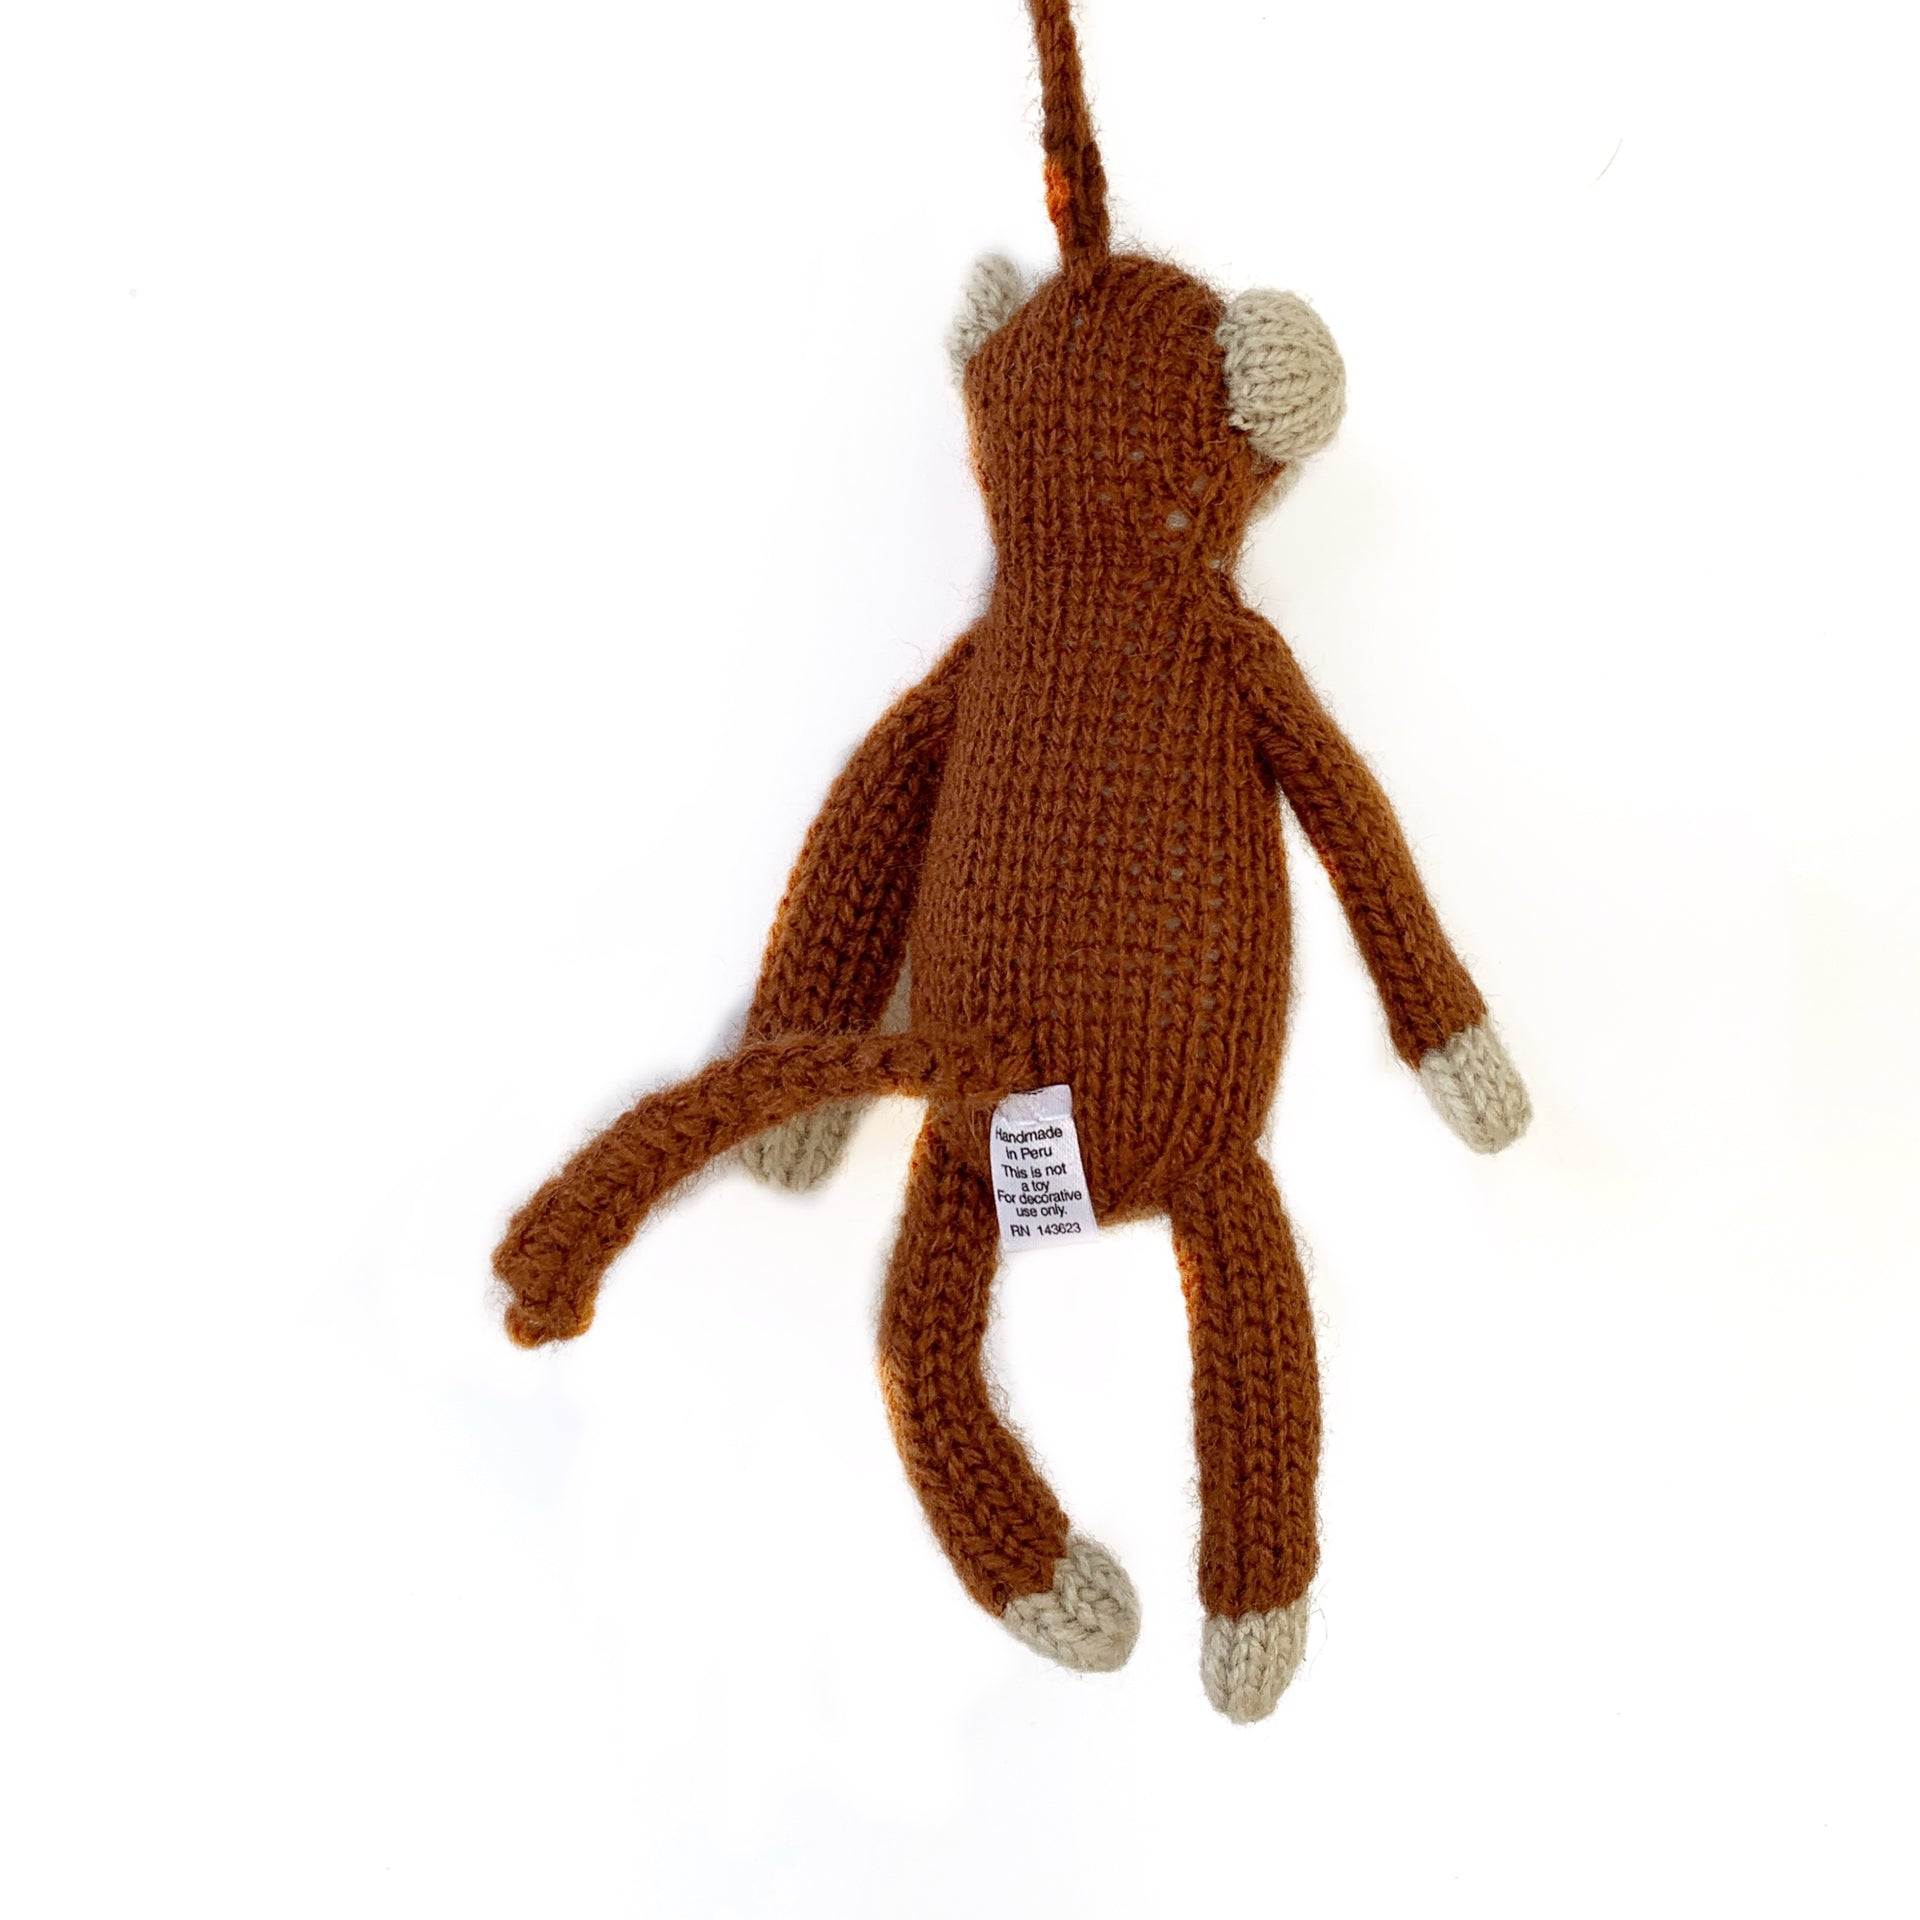 Knit Monkey Ornament Fair Trade Christmas